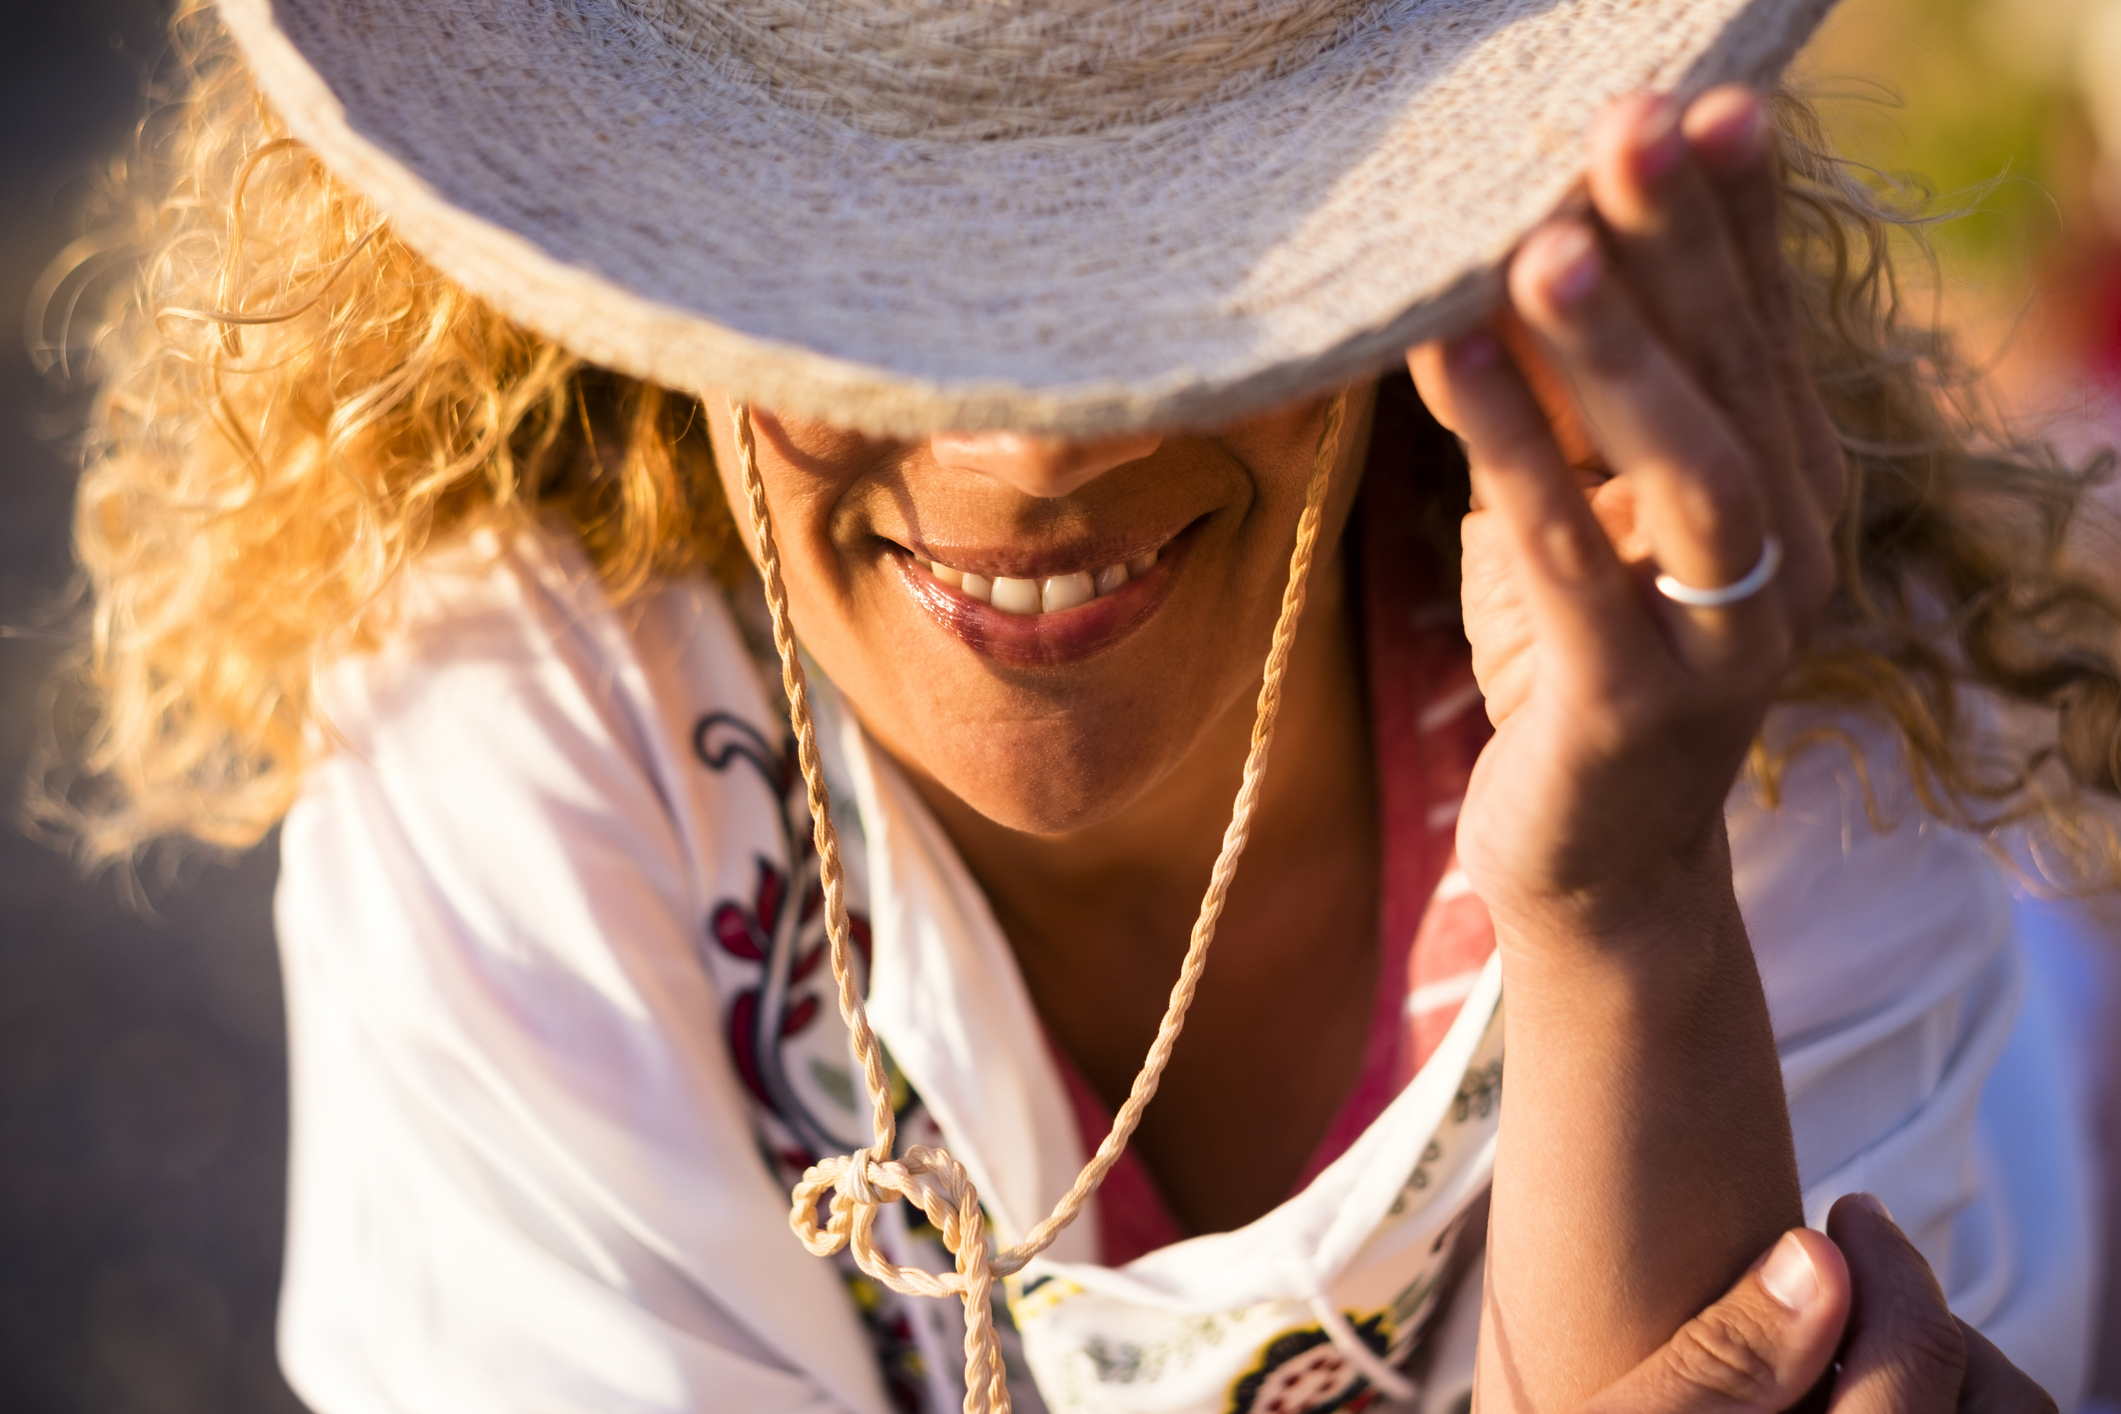 Why sun exposure after menopause increases hormone-related risks